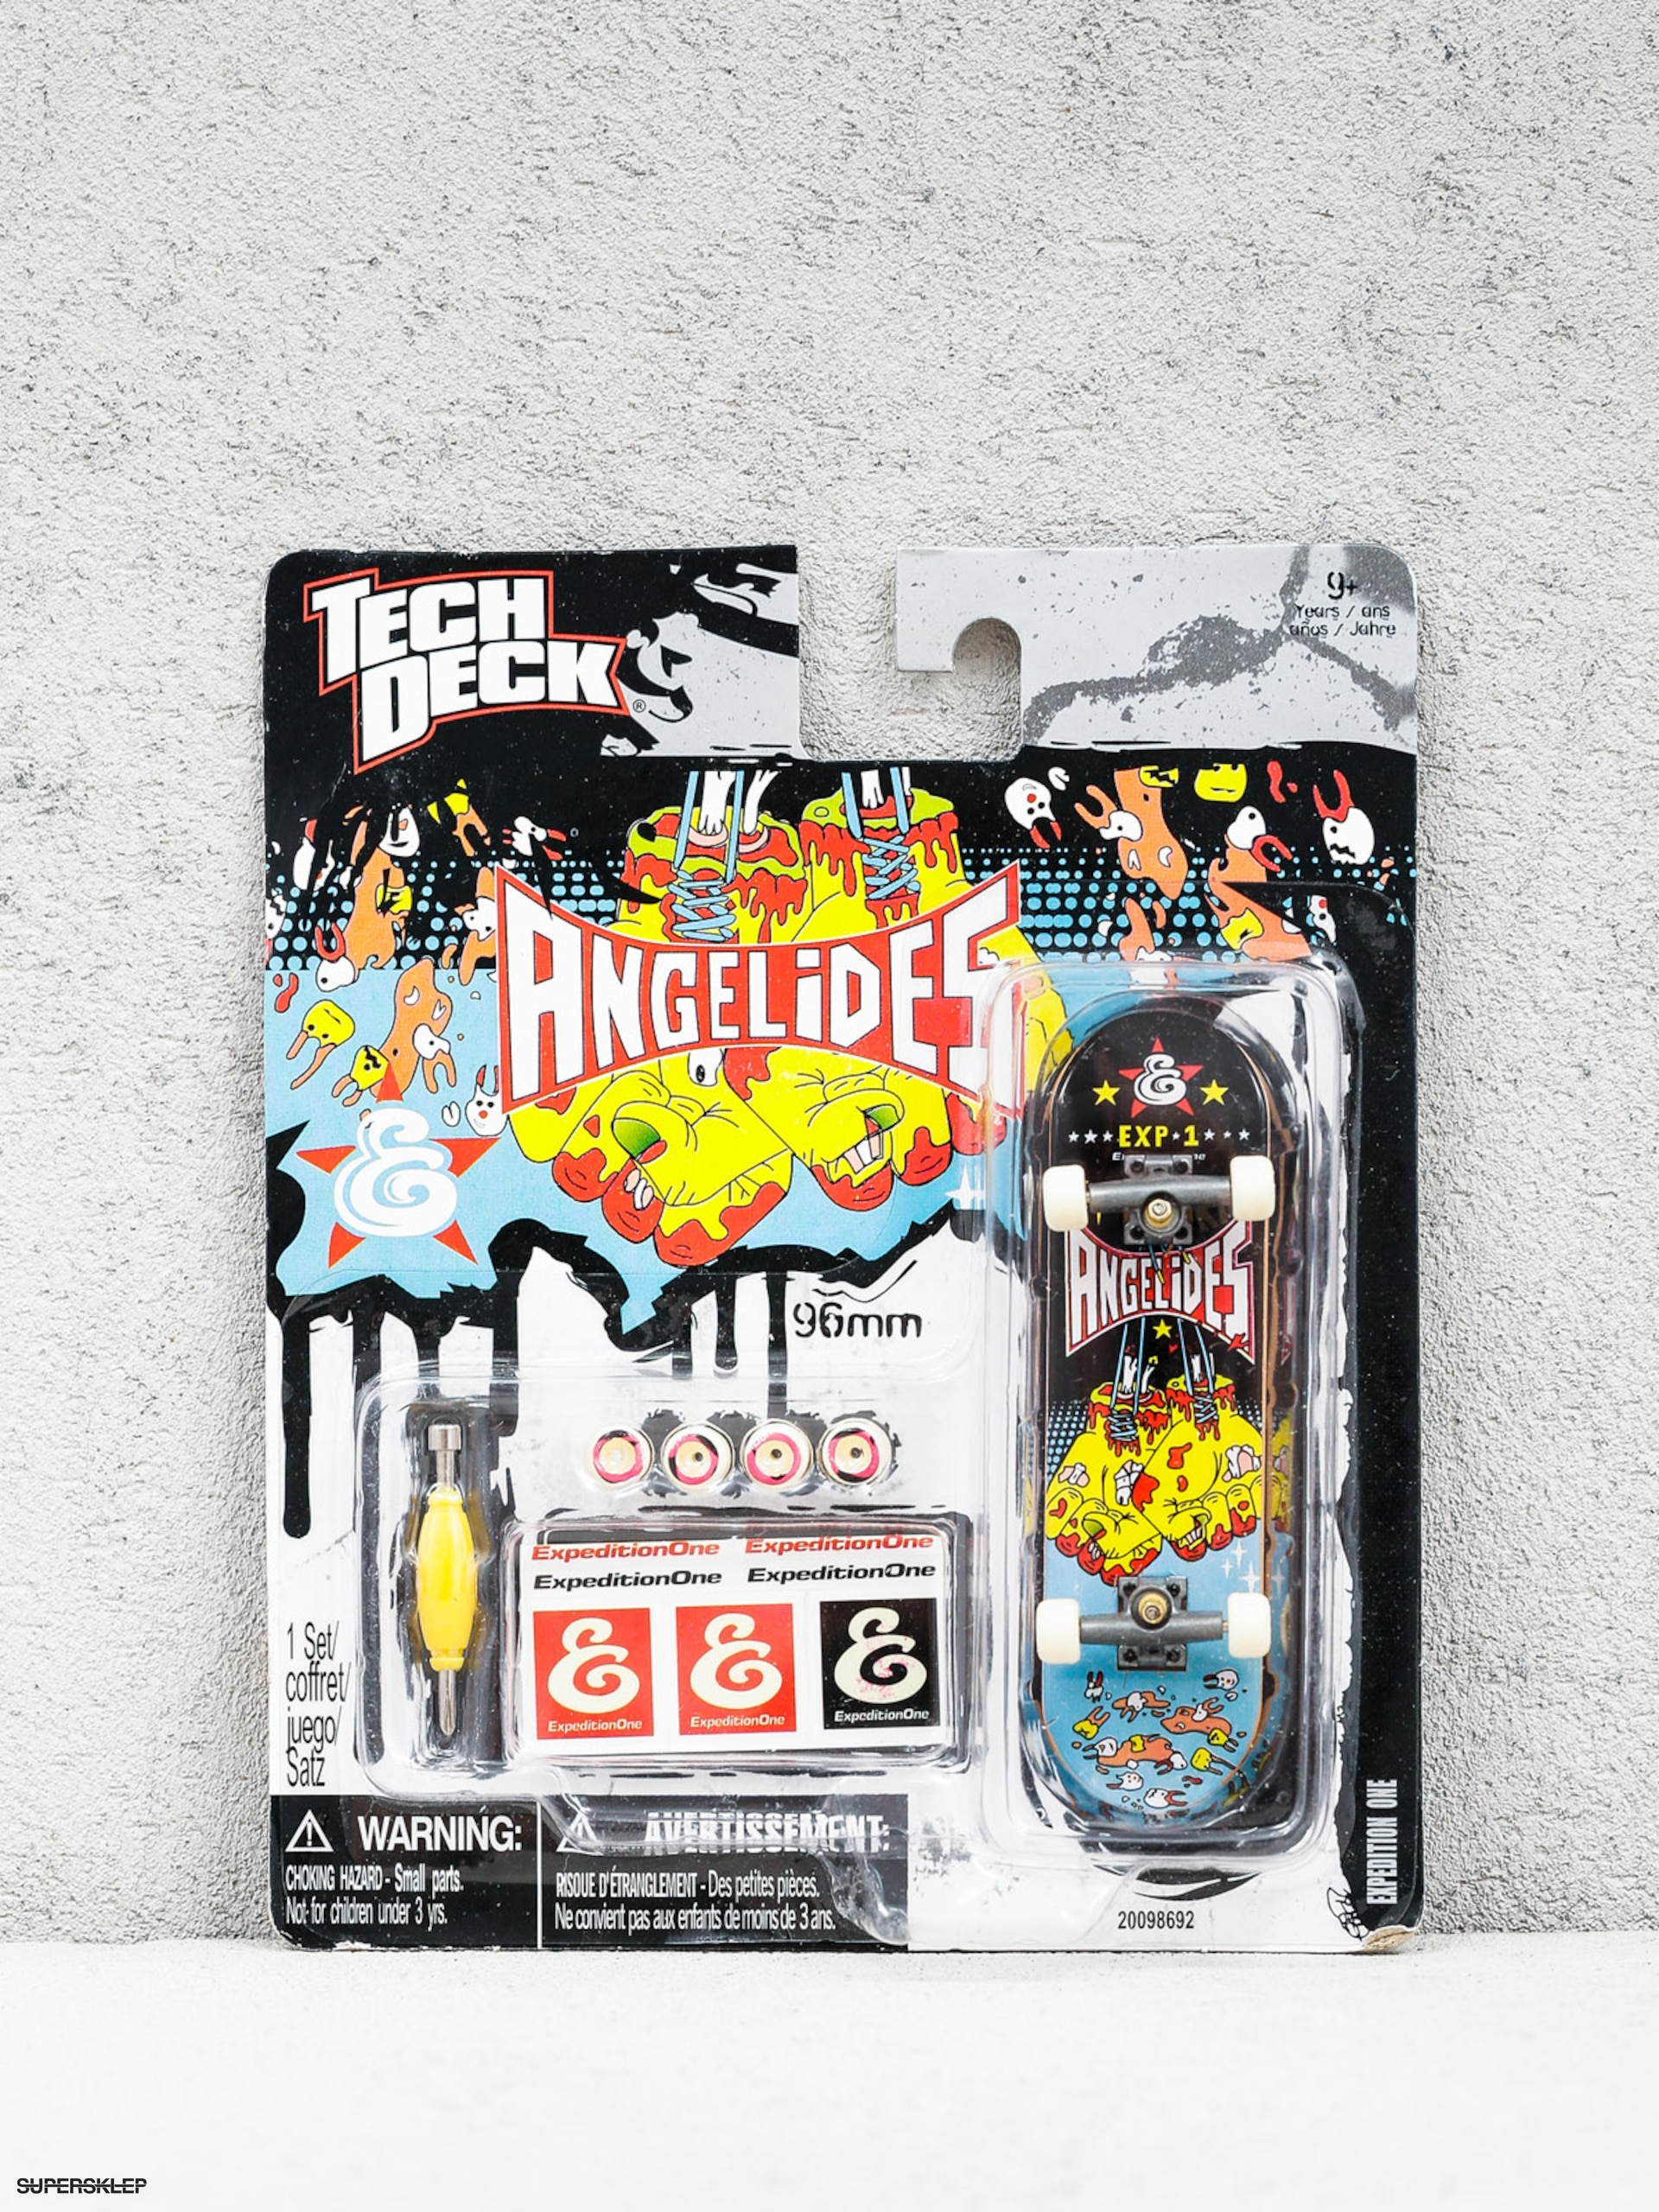 Tech Deck Fingerboard Expedition One 03